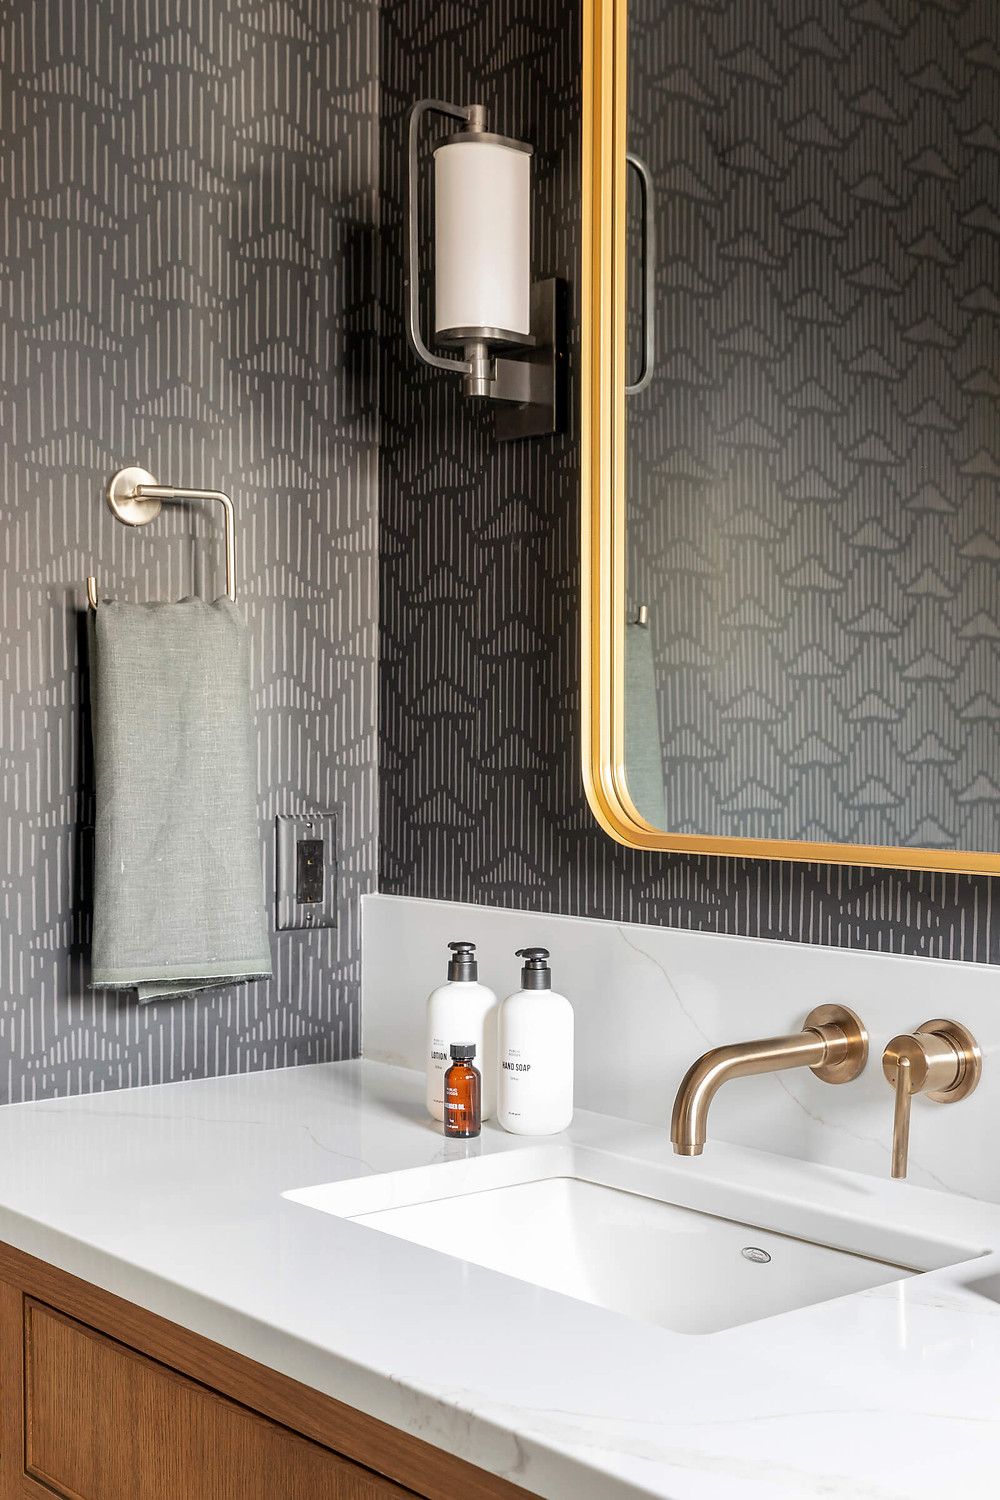 Black geometric Hygge & West wallpaper in kids bath room with beautiful brass wall mount faucet and mirror